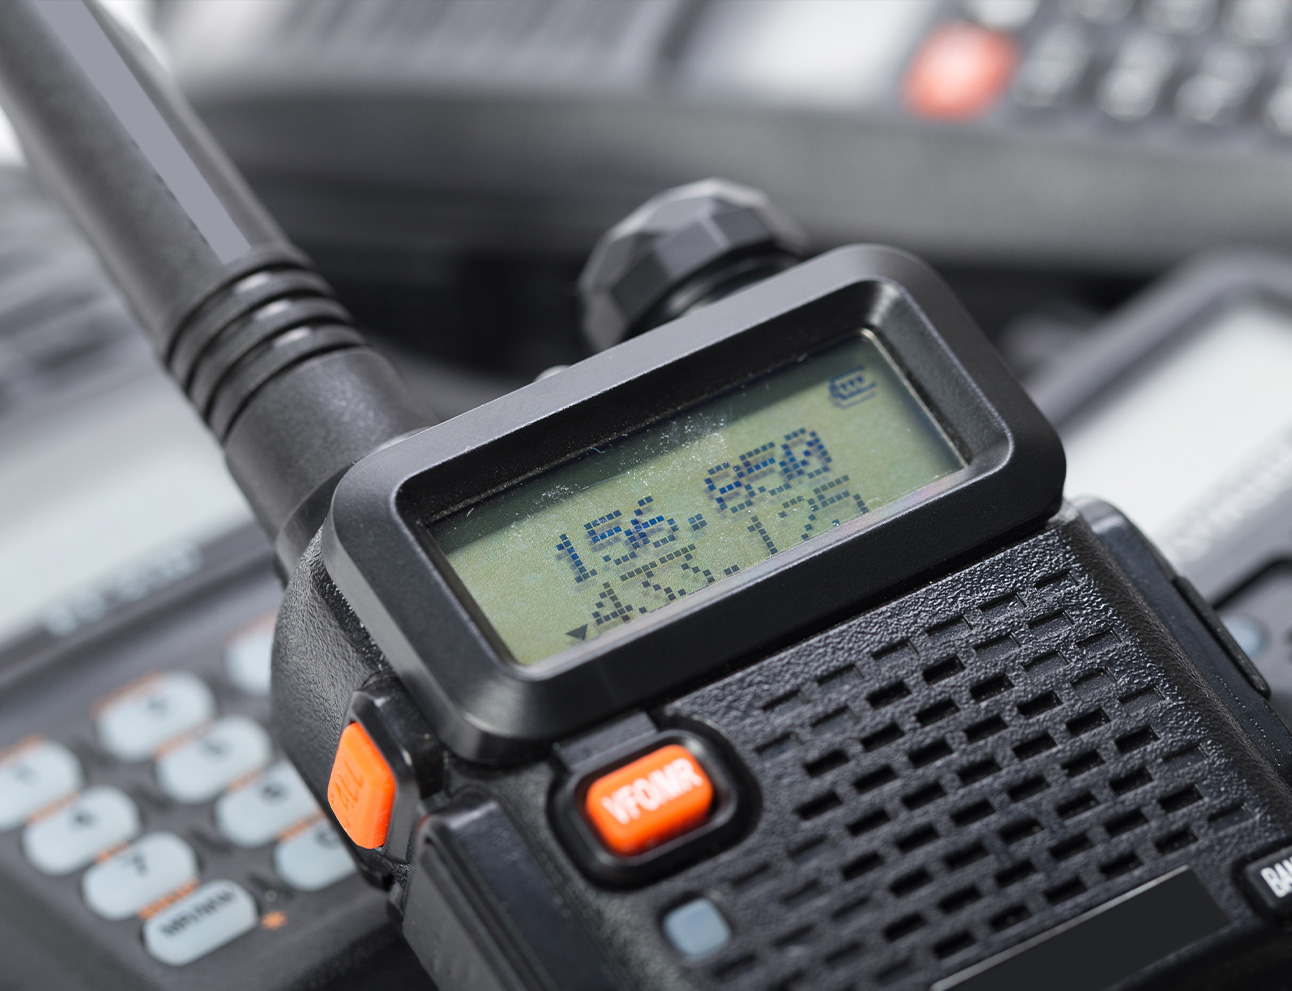 Two Way Radios for Team | Two Way Radios for Security, Safety and Business - Fast Radios, Inc.